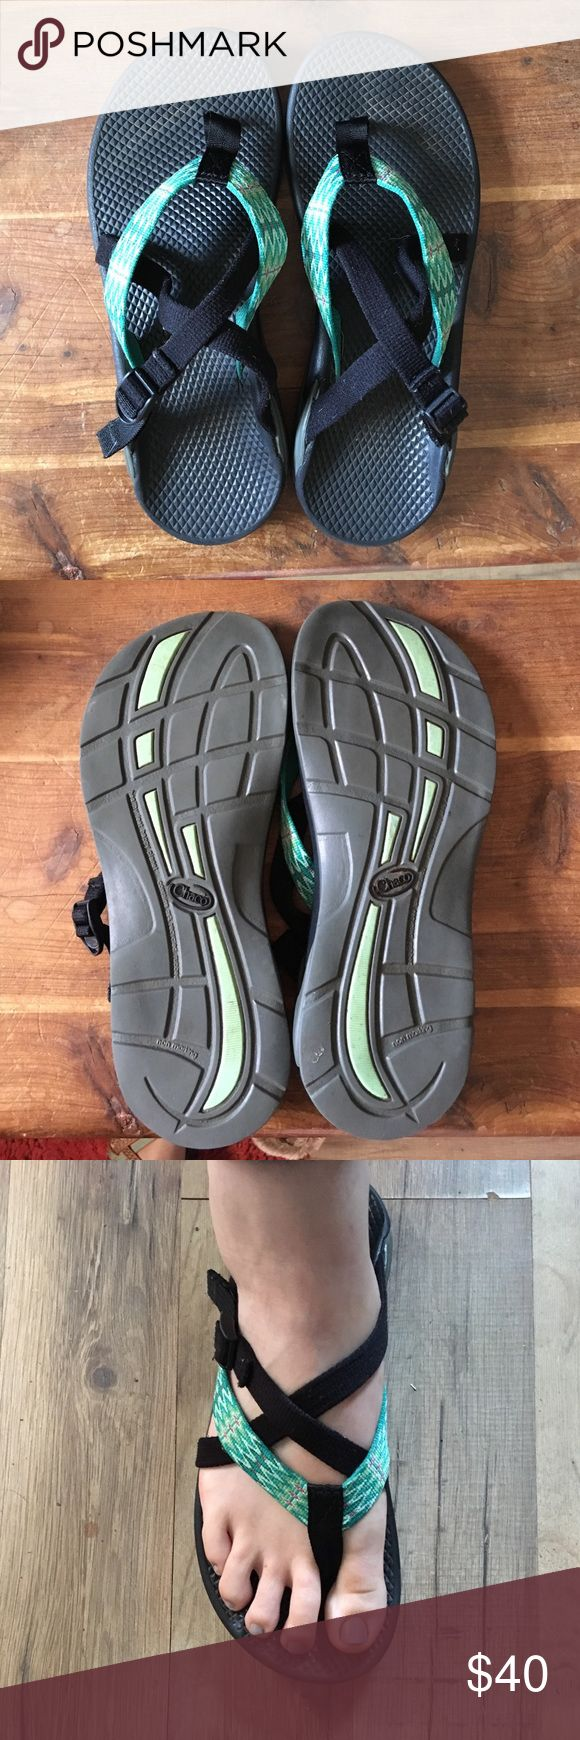 Women's chacos. Size 9 Women's Hipthong Chacos. Size 9. Excellent condition.  Barely worn. Chacos Shoes Sandals